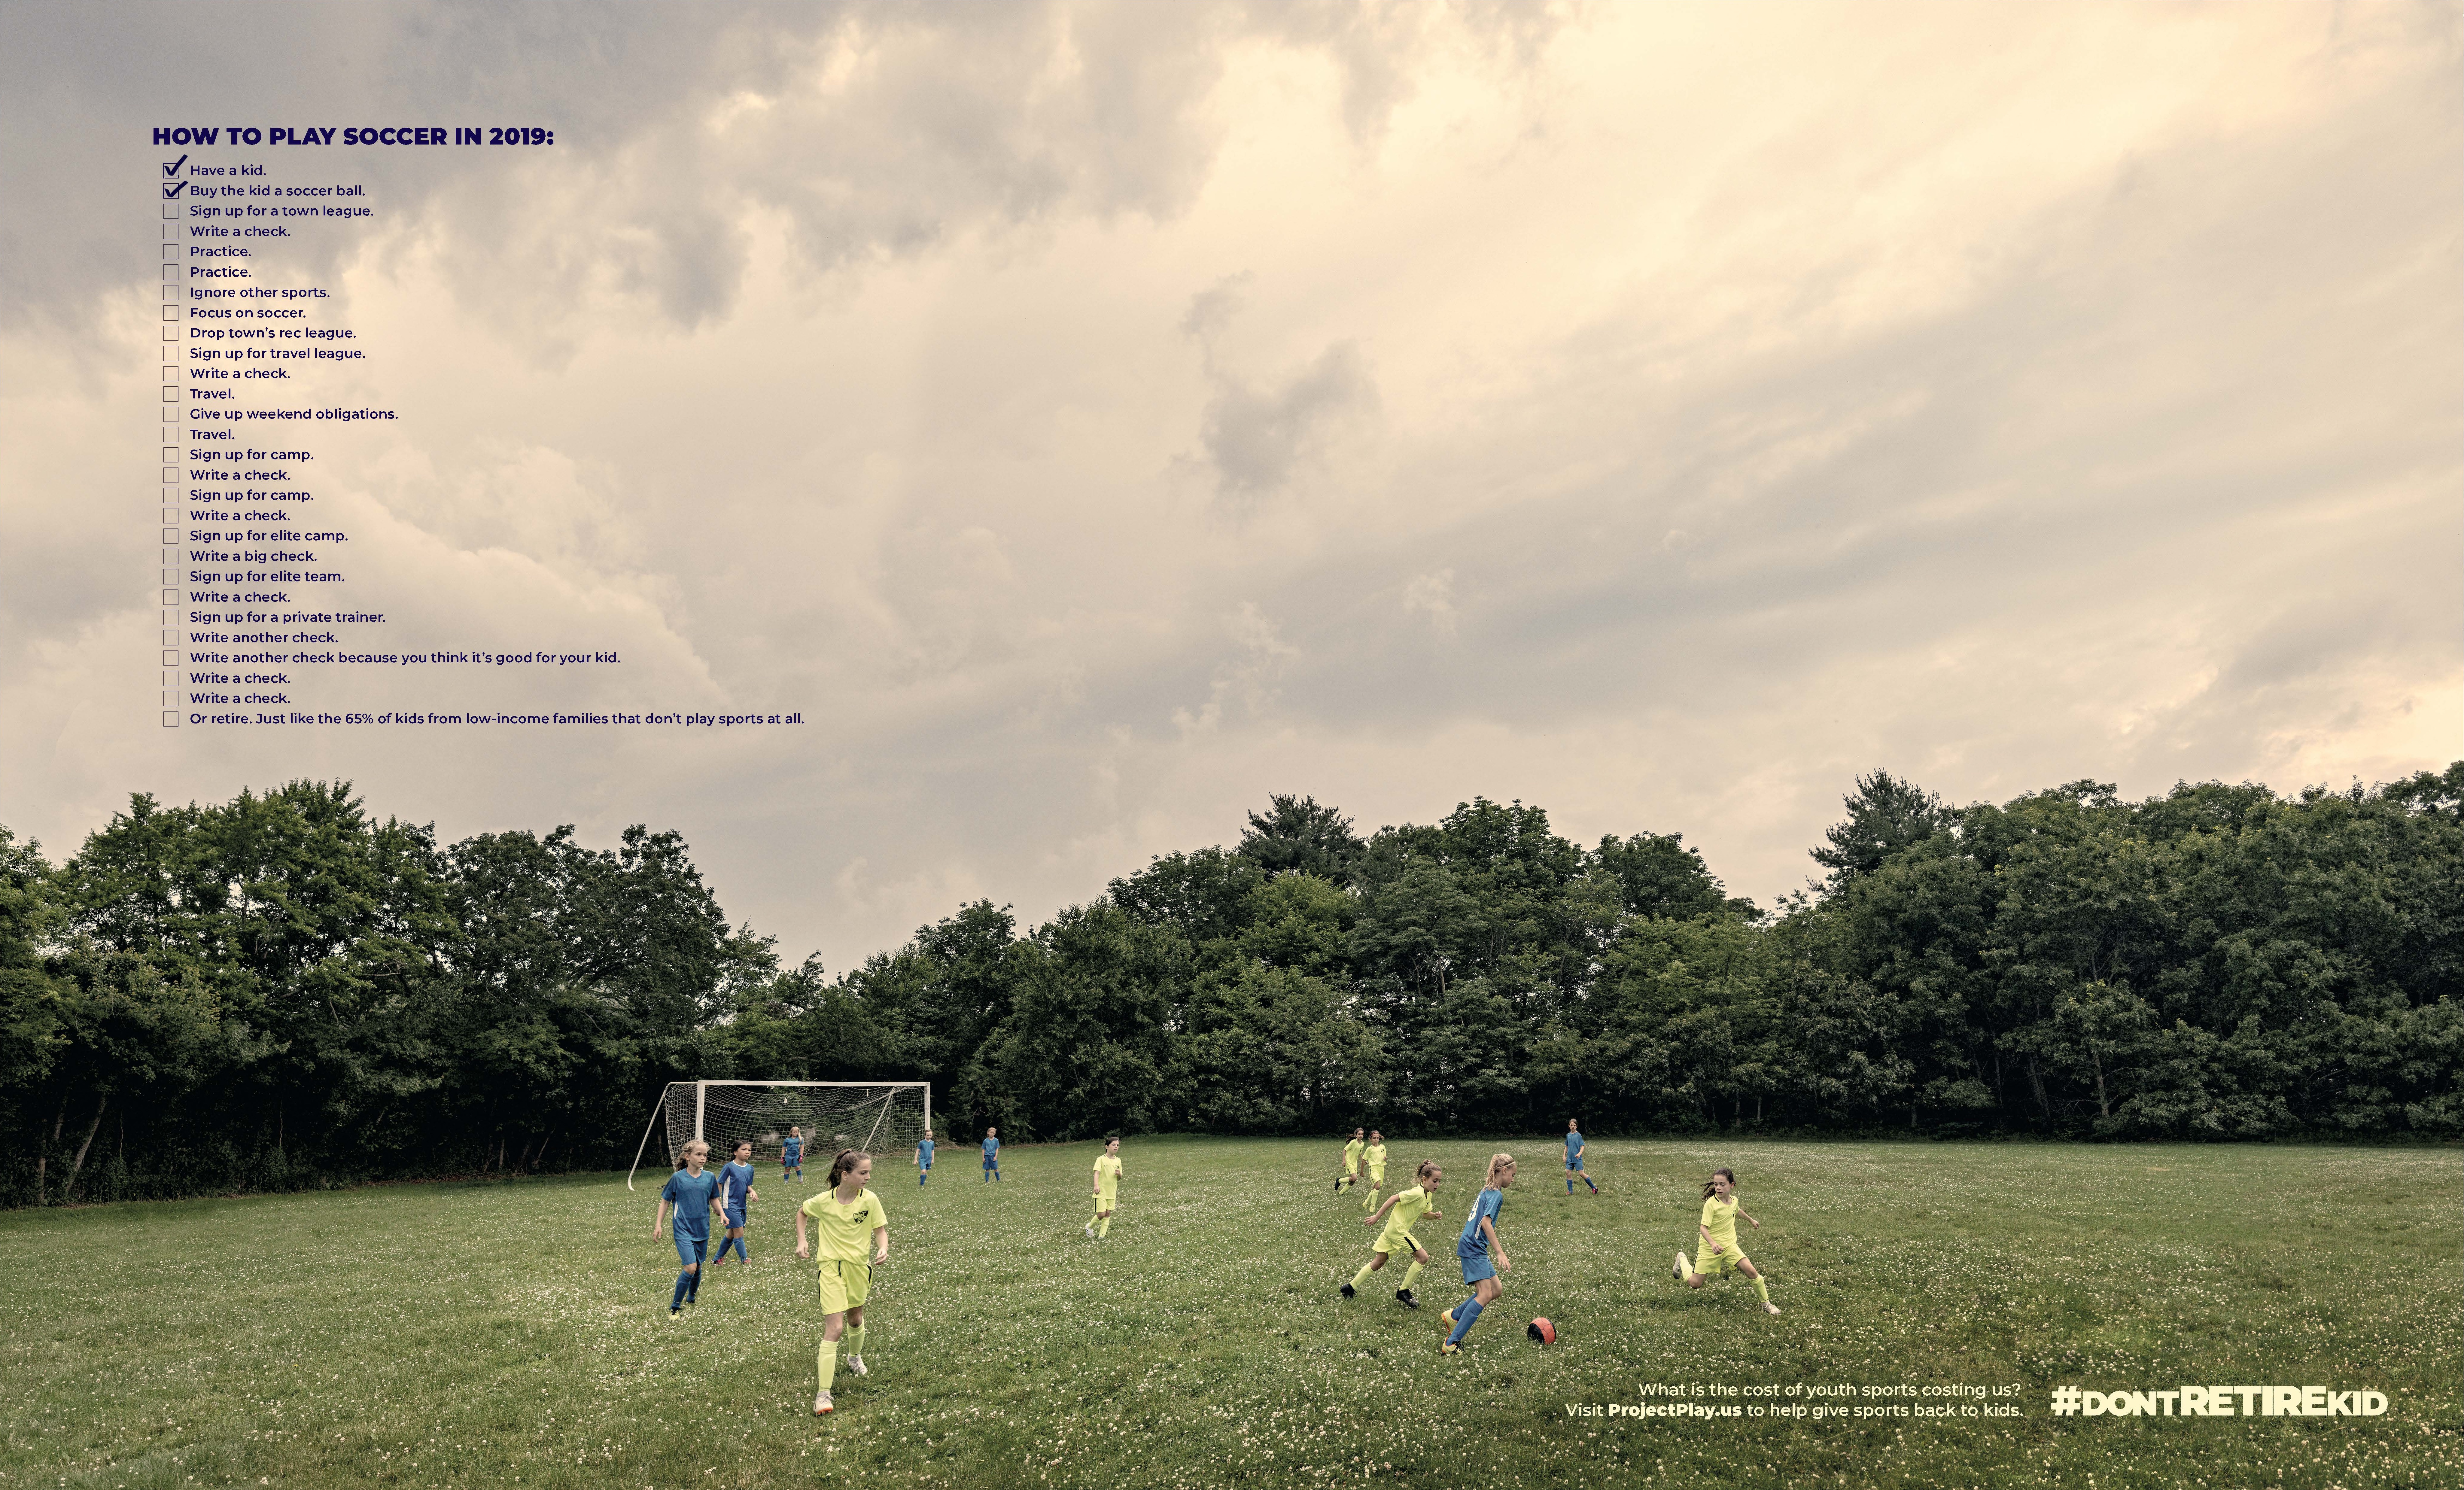 """d0598f9bd """"Don't Retire Kid,"""" a new Project Play parent engagement campaign, is  designed to drive public awareness of youth attrition in sports."""